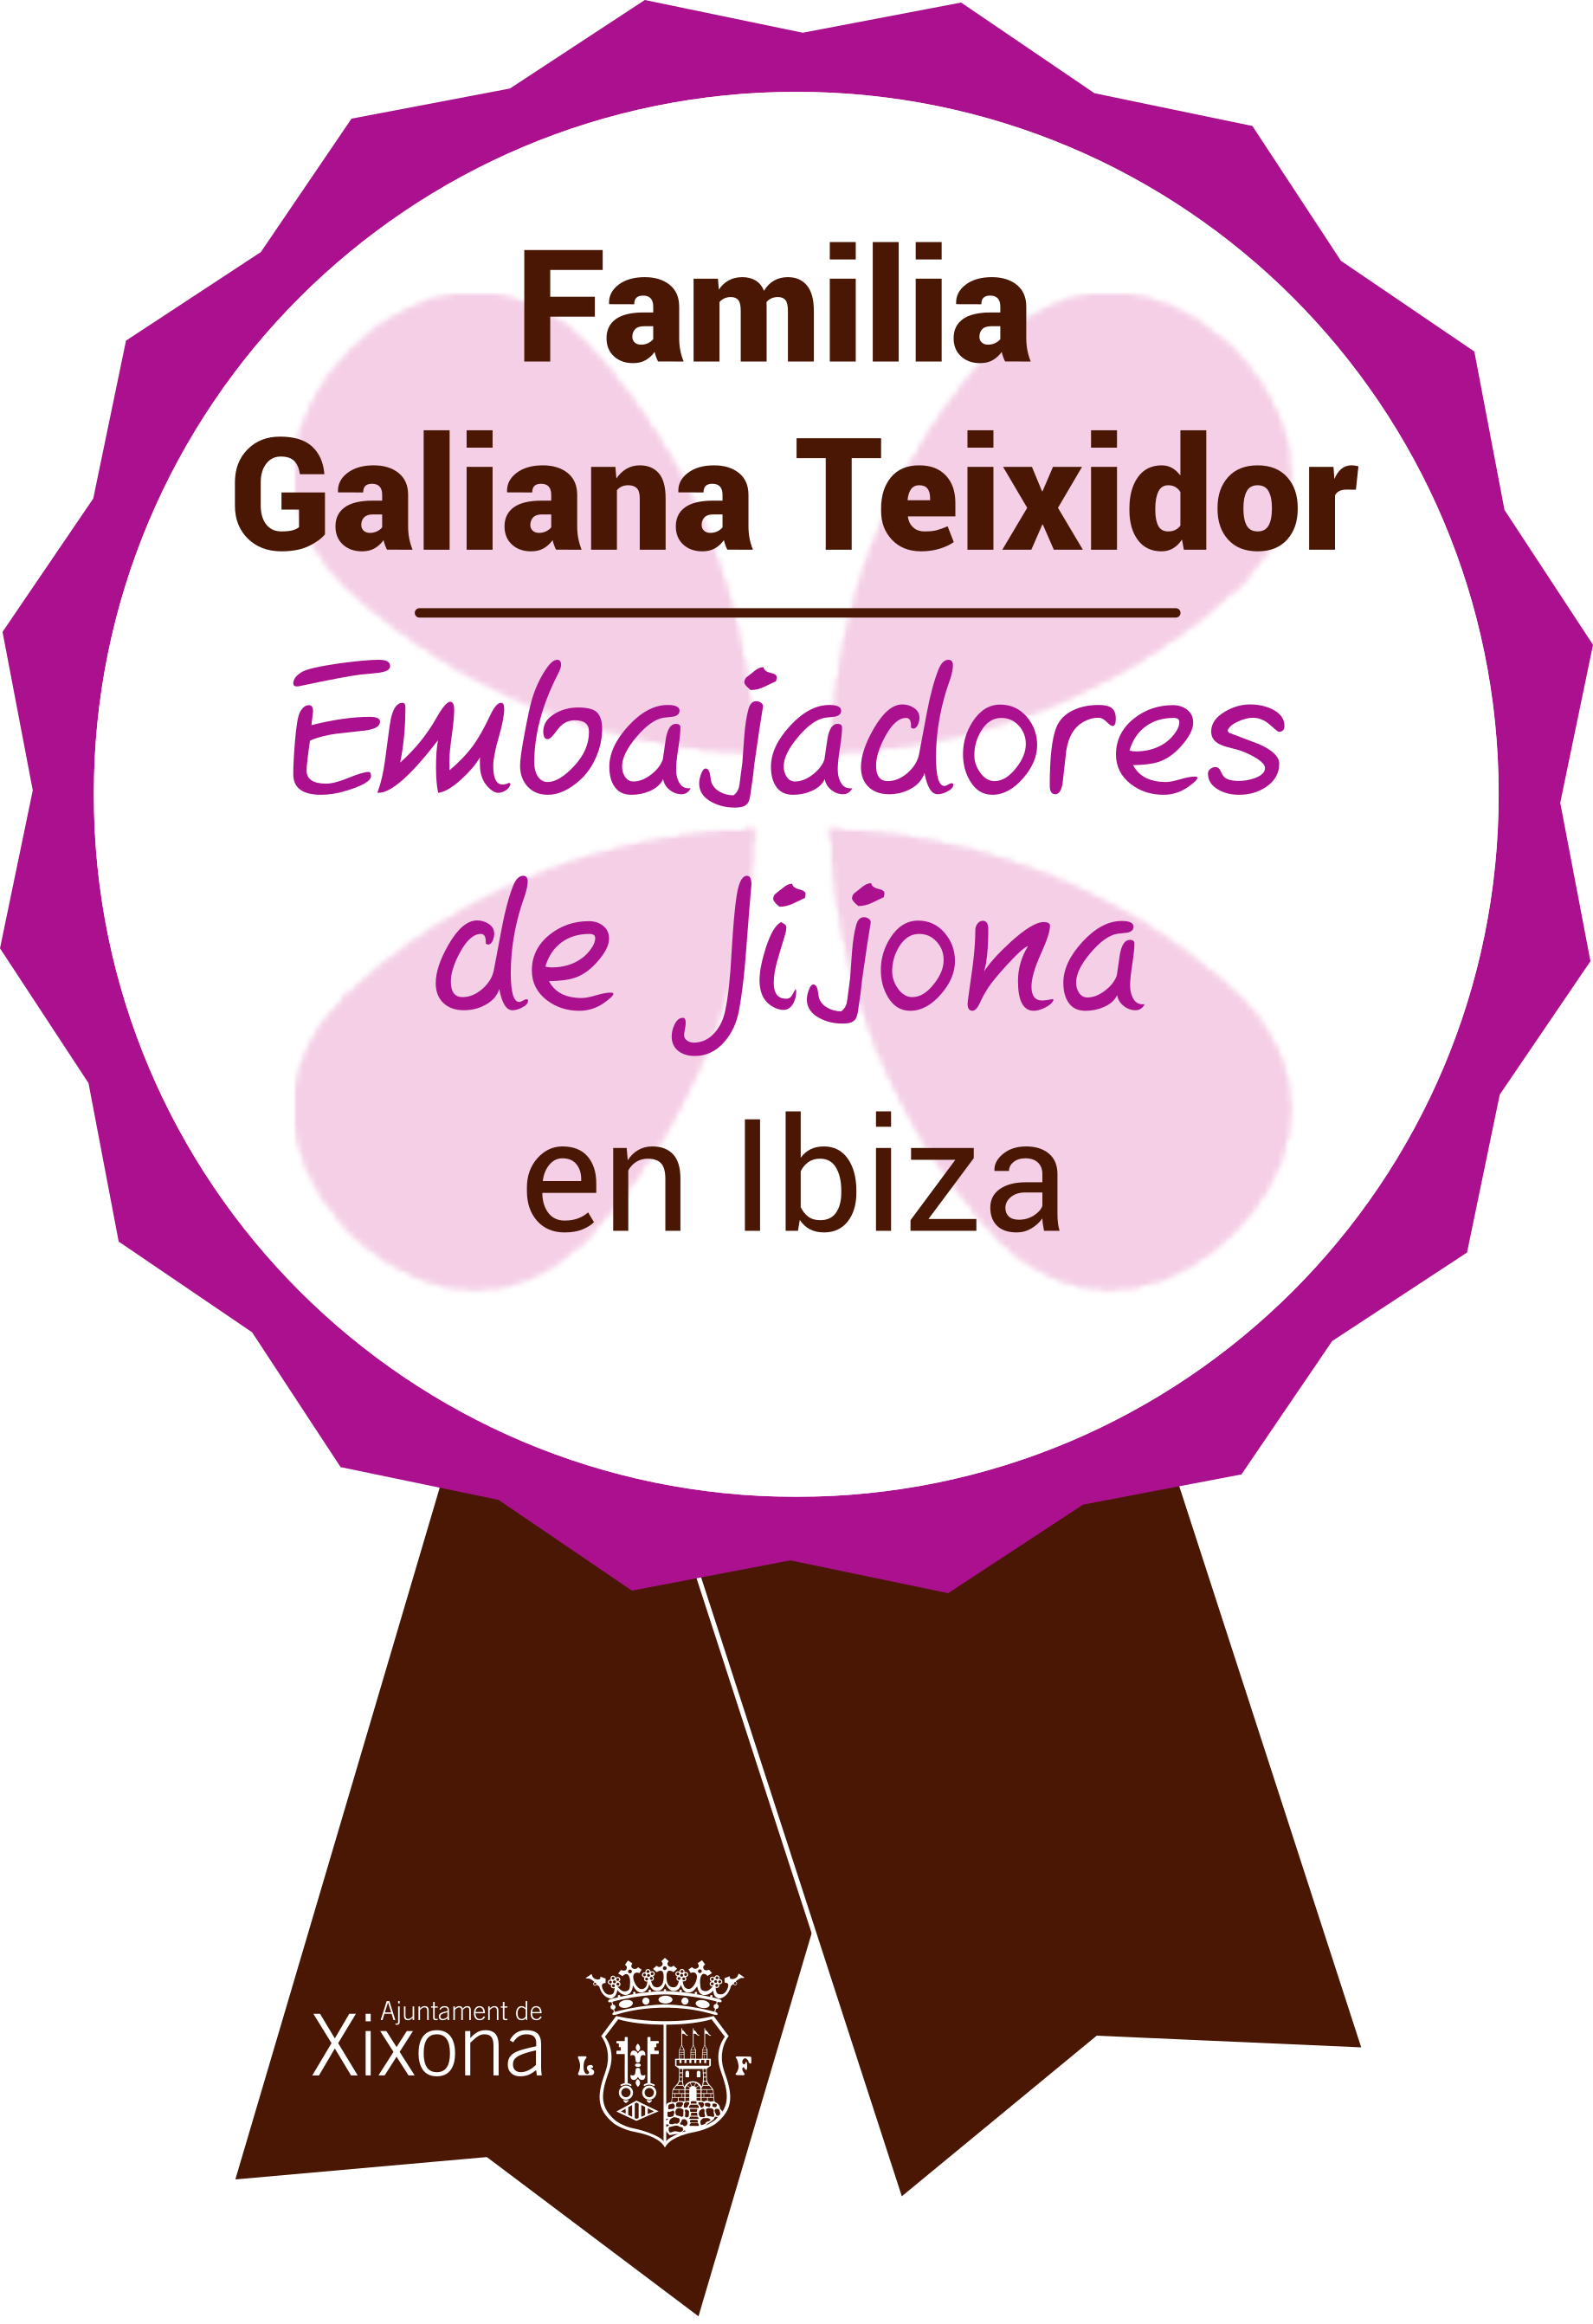 medallas-galiana-teixidor